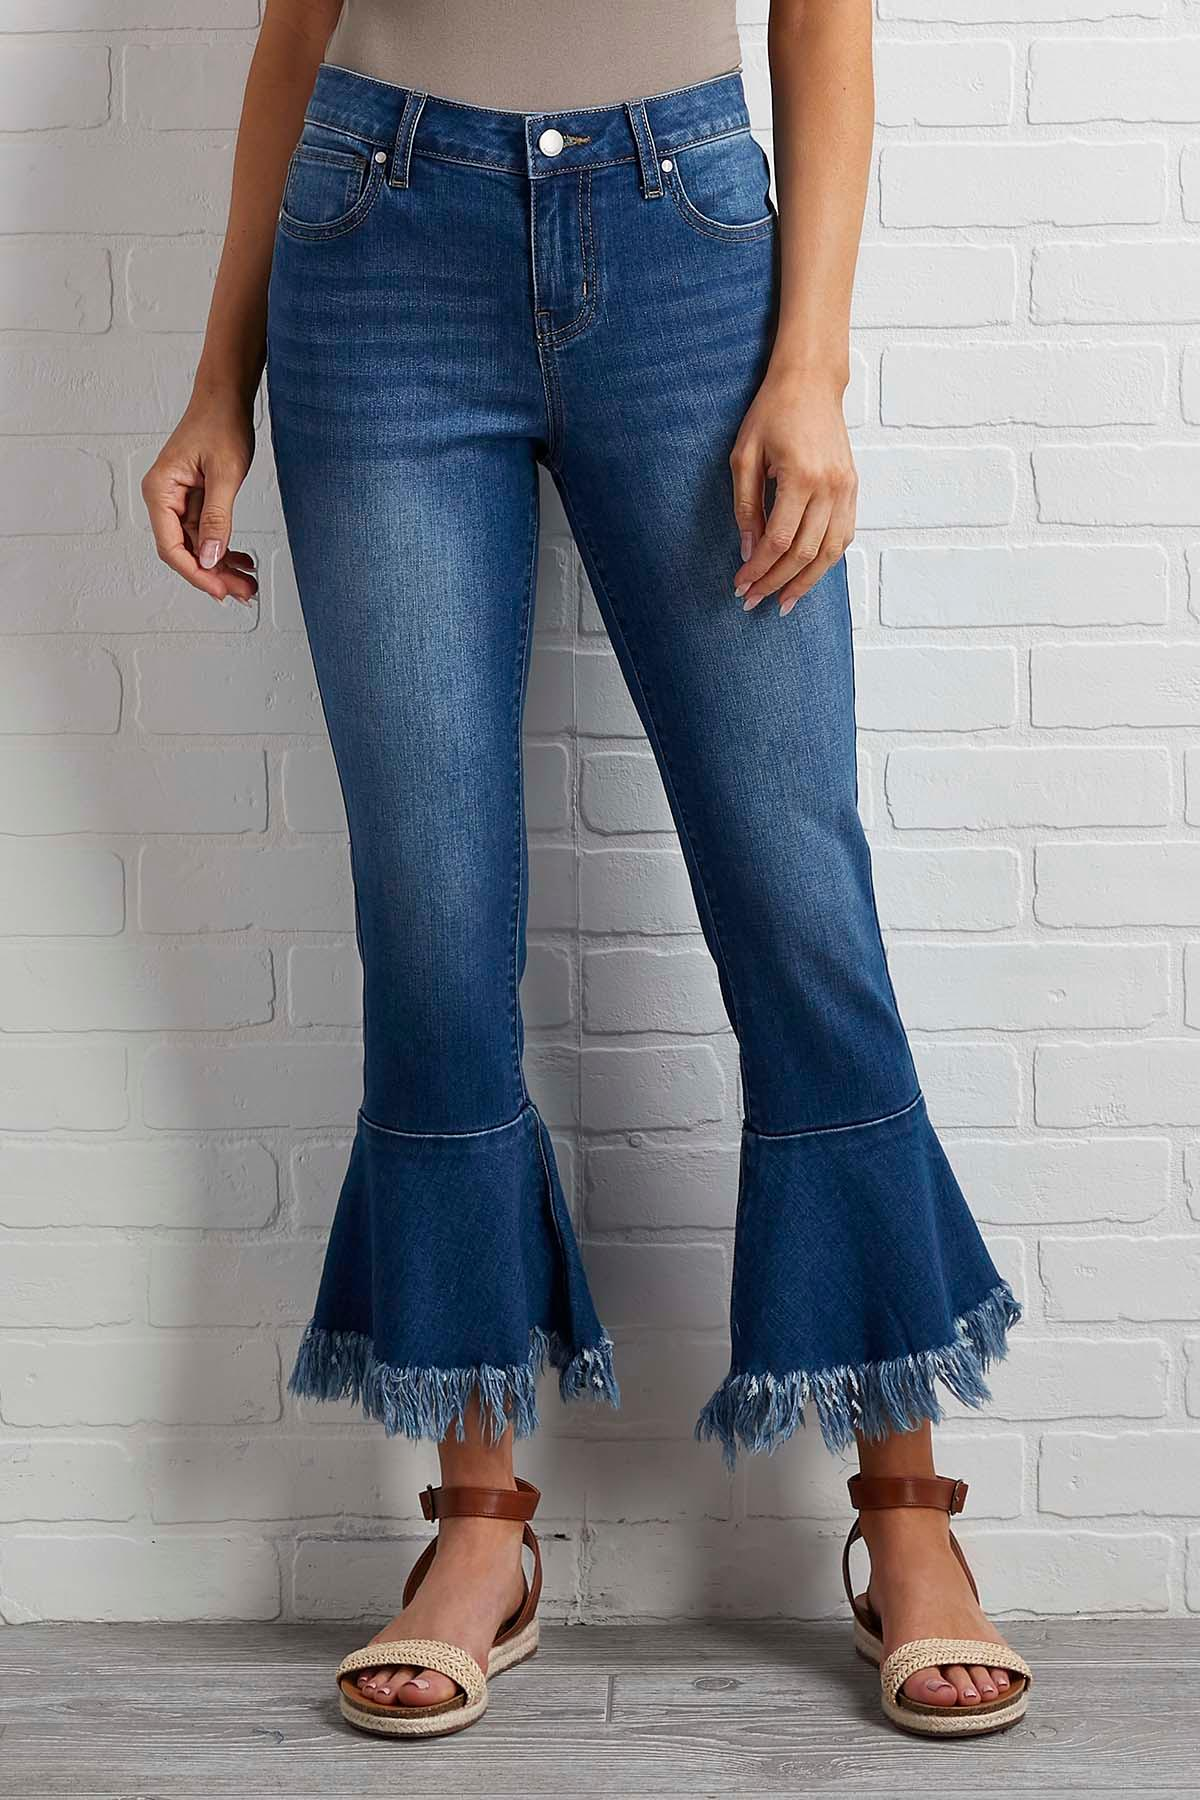 Not Much To Fray Jeans